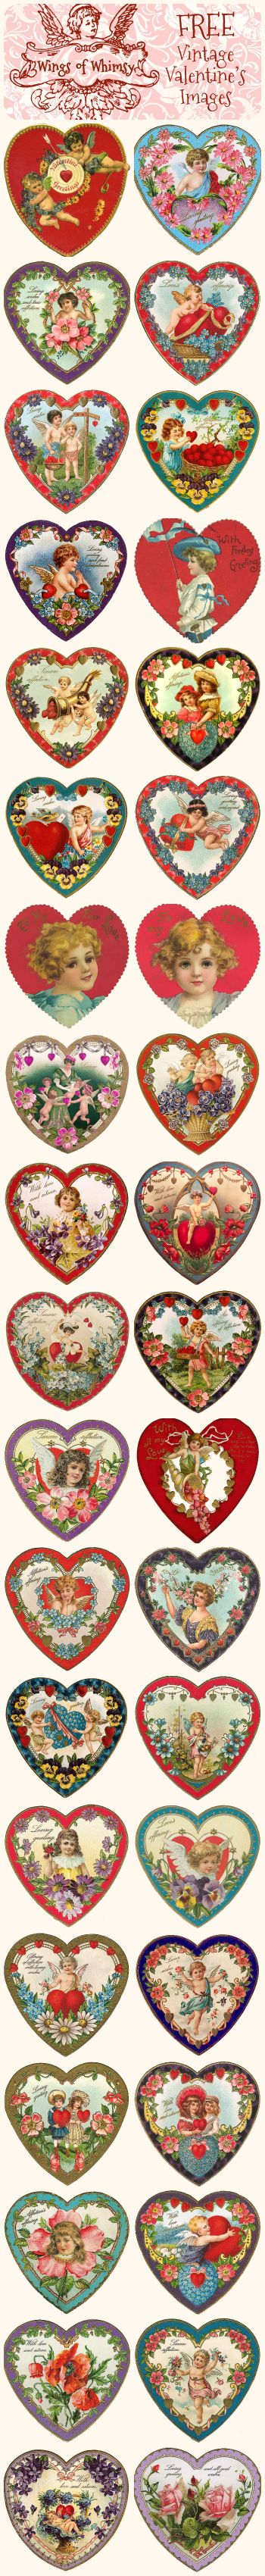 FRE printable vintage valentine's hearts | Wings of Whimsy